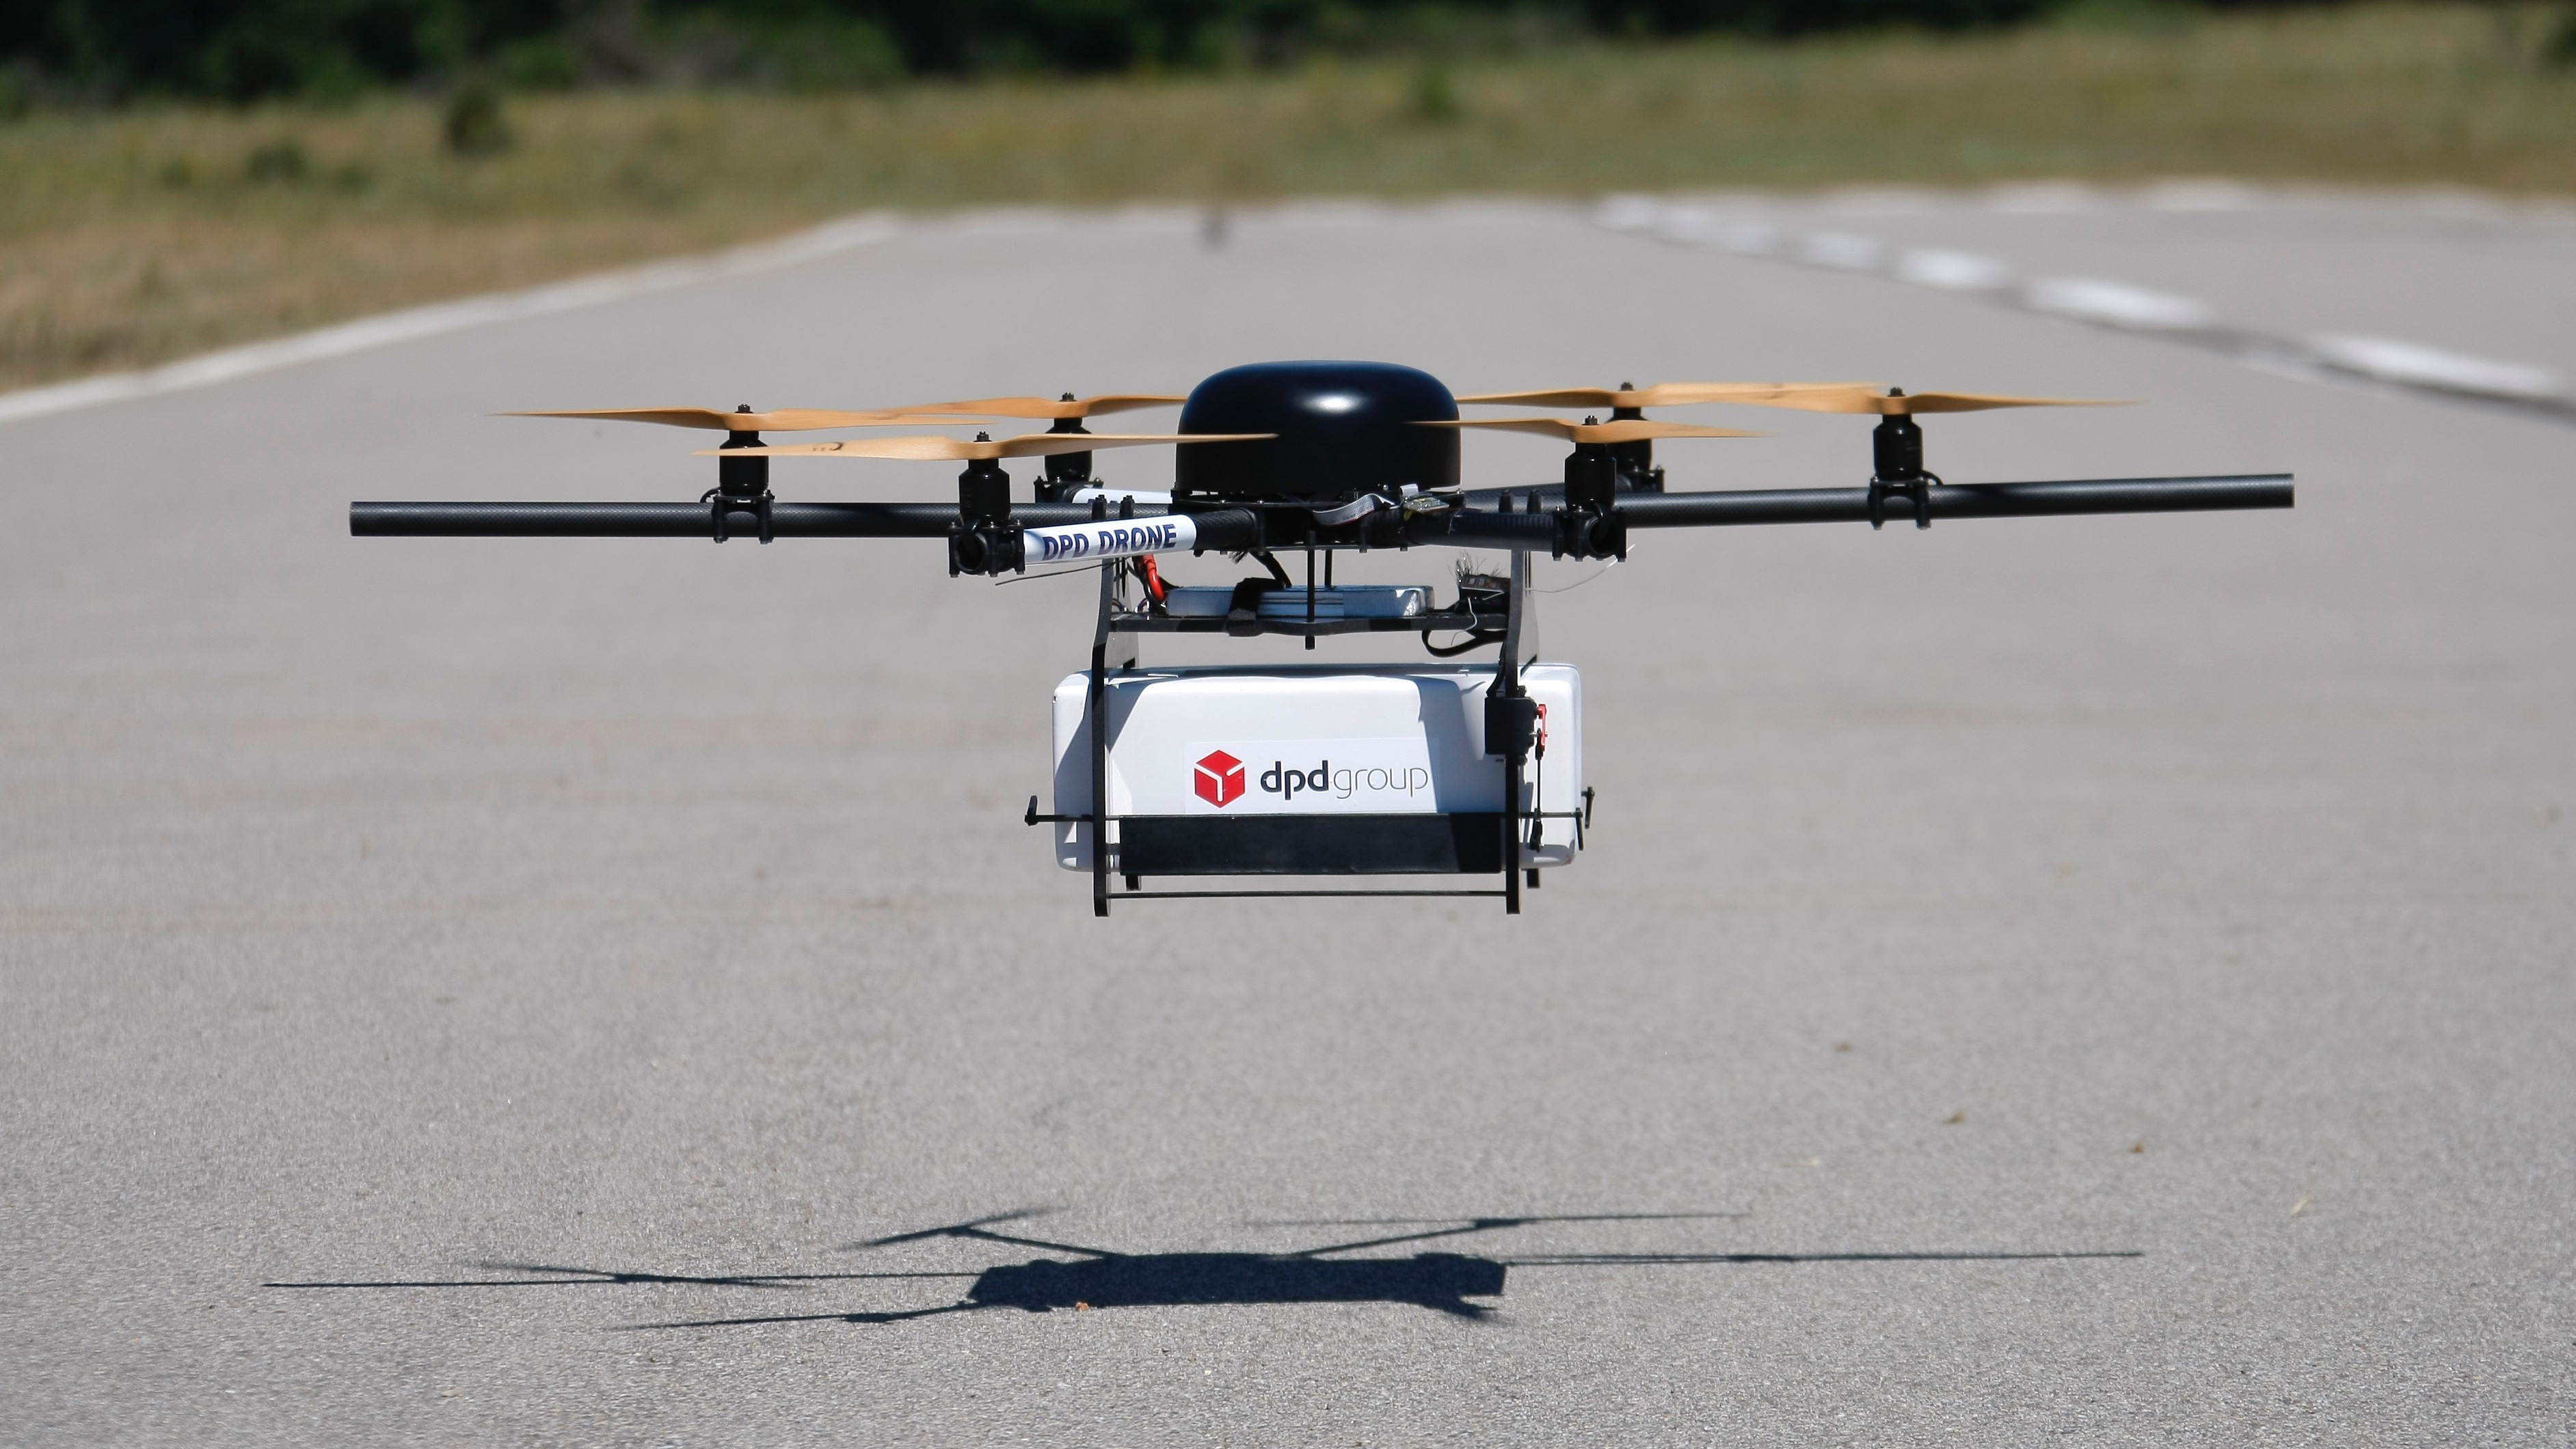 A DPD Geopost prototype drone files carrying a parcel flies during a test flight in Pourrieres, southern France, June 23, 2015. GeoPost, a package delivery subsidiary of LaPoste, is set to launch a programme which will see parcels delivered by drones. The GeoDrone completed its first successful automated flight last September. (AP Photo/Claude Paris)